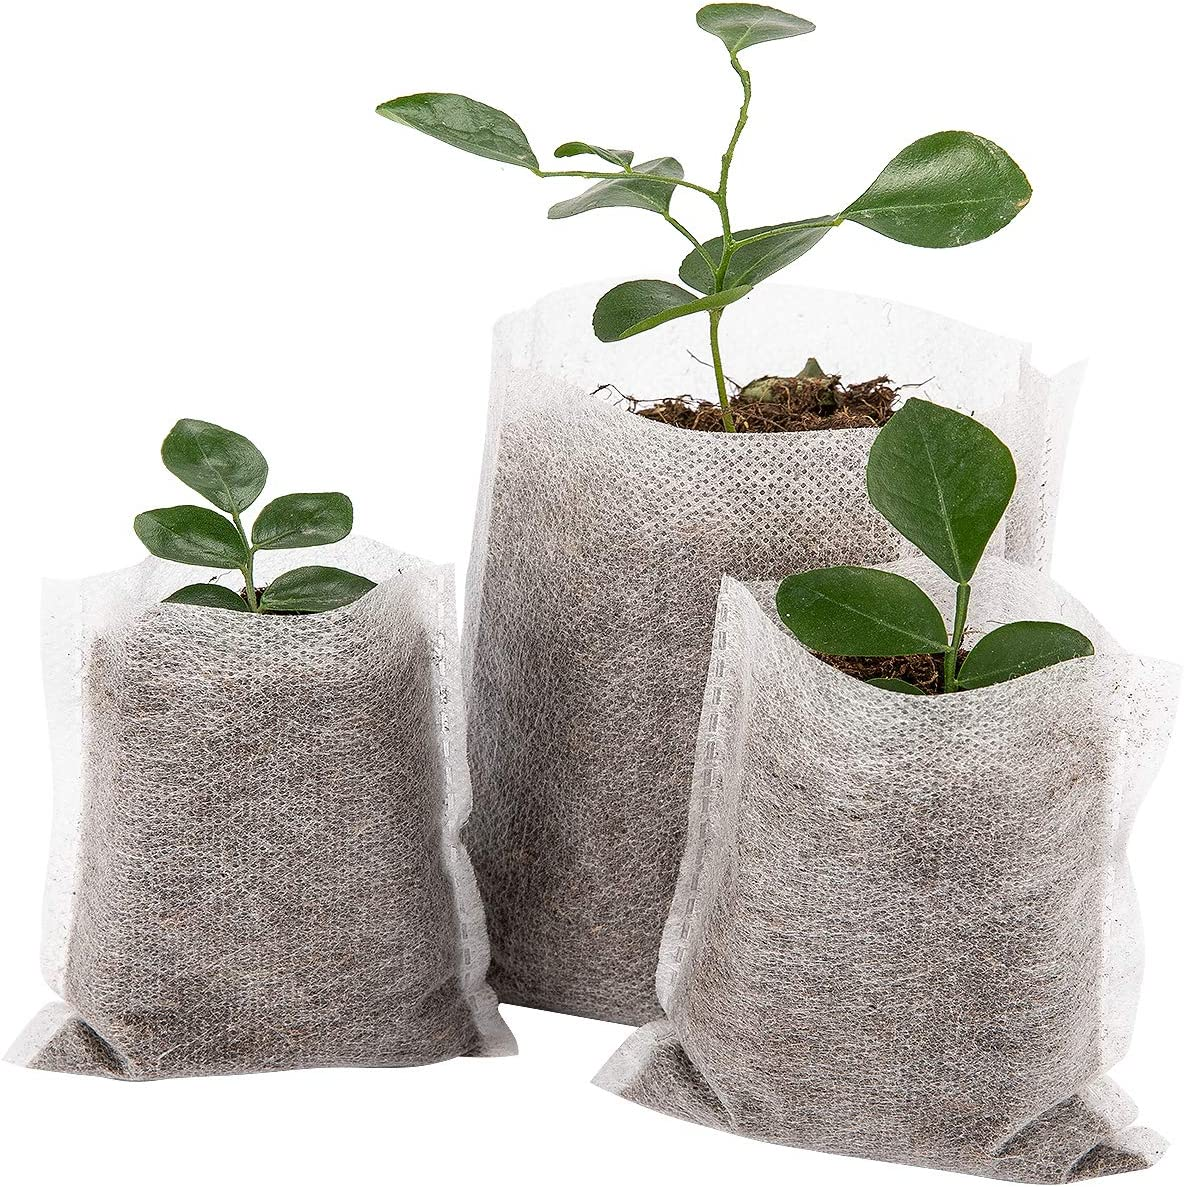 Cosweet 500 pcs Assorted Sizes Seedling Plant Grow Bags, Biodegradable Non-Woven Nursery Fabric Seeding Starting Fiber Soil Transplant Pouches, Home Garden Supply